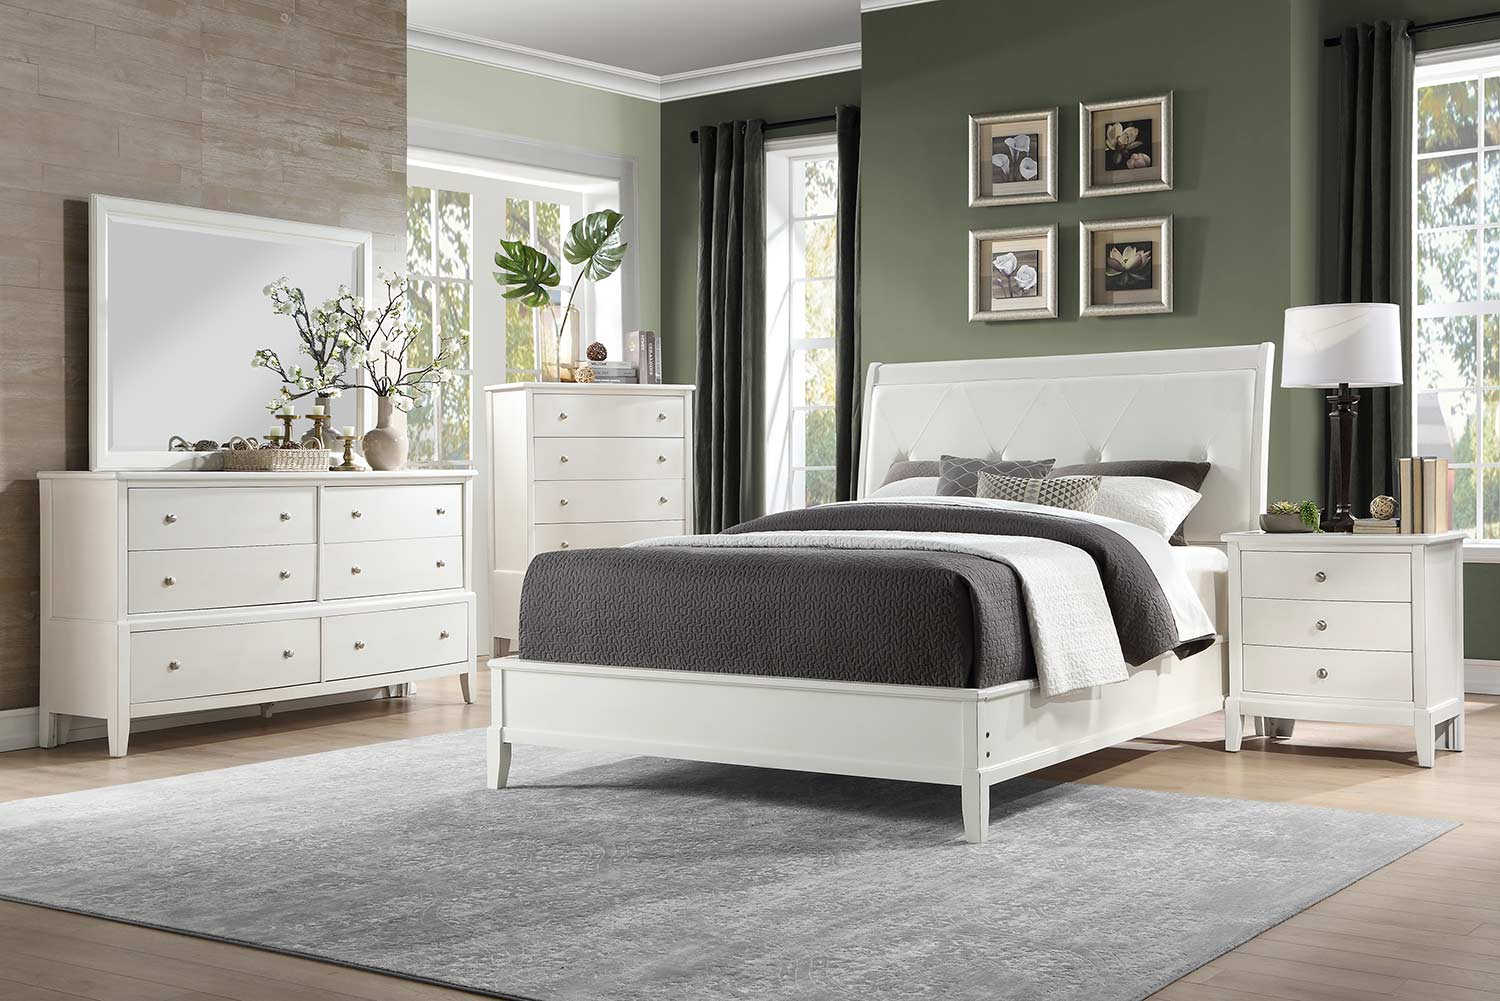 Homelegance Cotterill Bedroom Set - White Finish over Birch Veneer